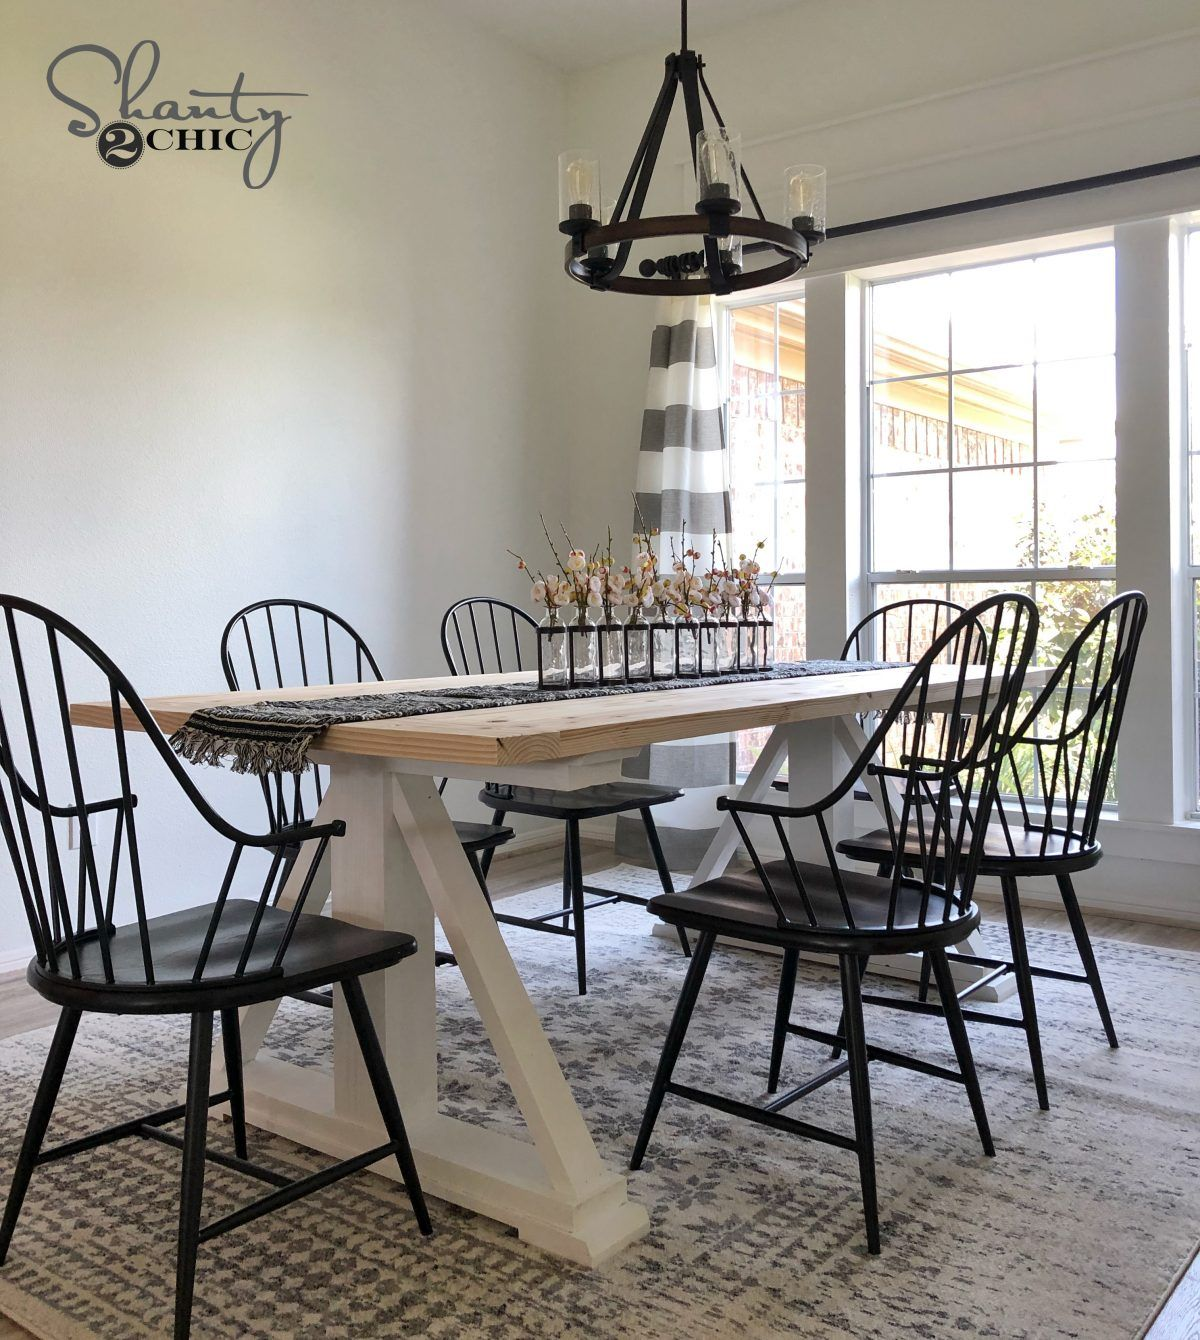 Diy Modern Farmhouse Dining Table Free Plans And Video With